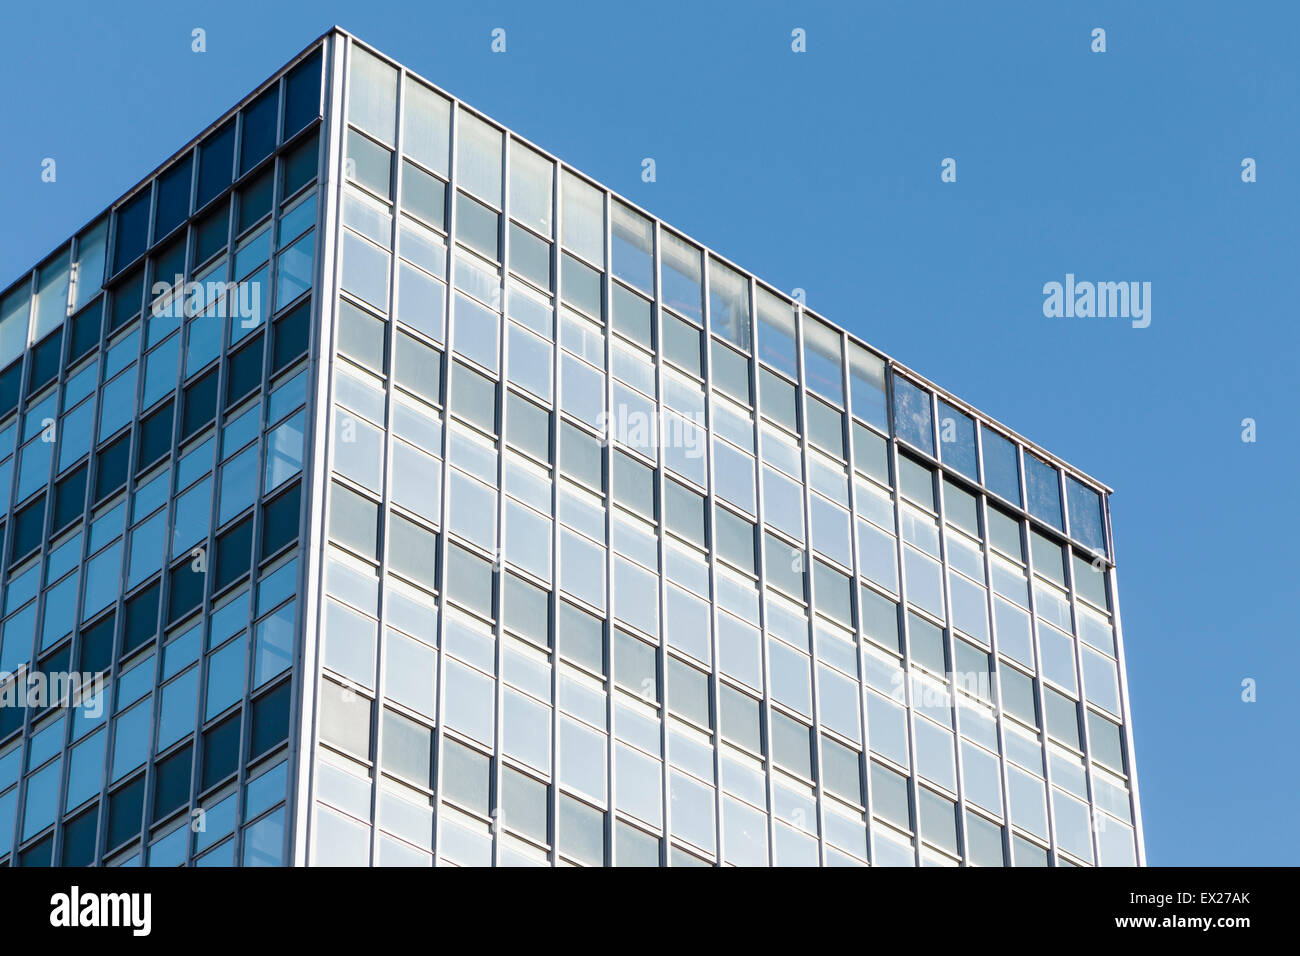 A generic modern office block in Manchester against a blue sky. - Stock Image